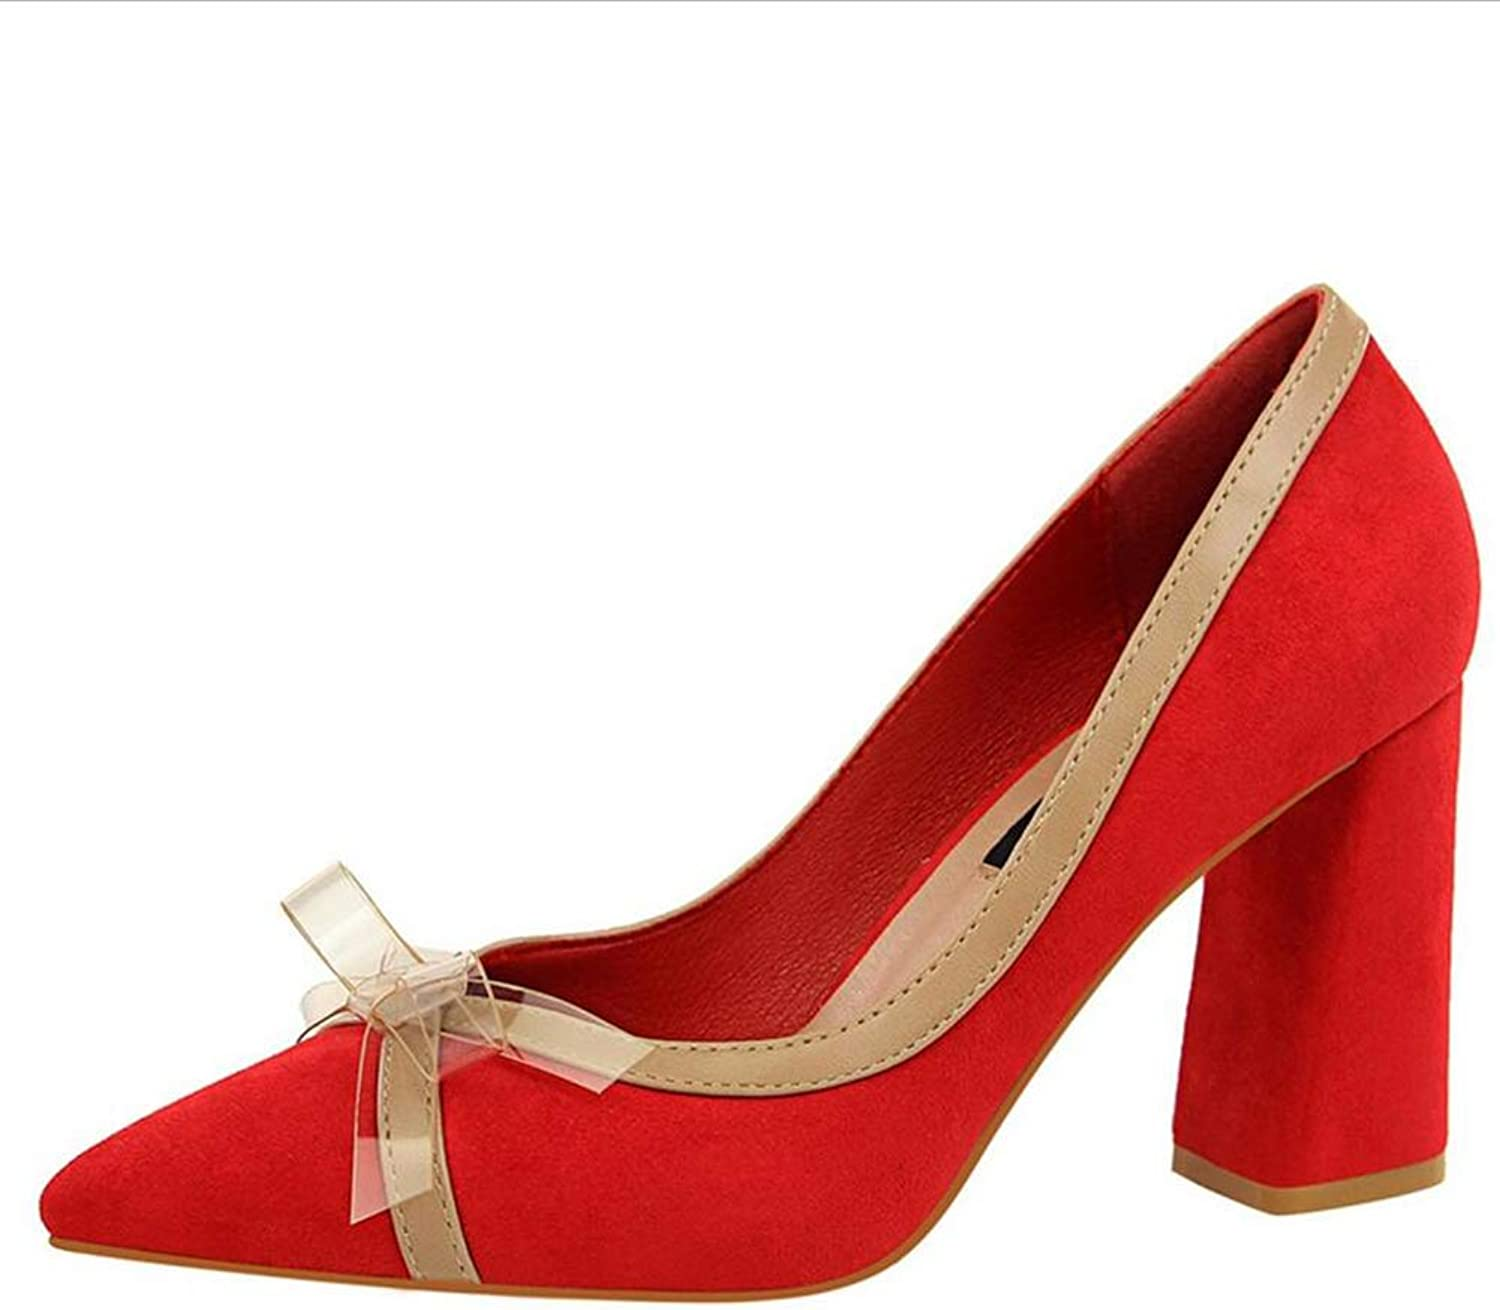 Court shoes Women's shoes shoes High Heel Suede Shallow Mouth Thick Heel Pointed Mixed colors Transparent Butterfly Knot shoes Haiming (color   Red, Size   6 US)